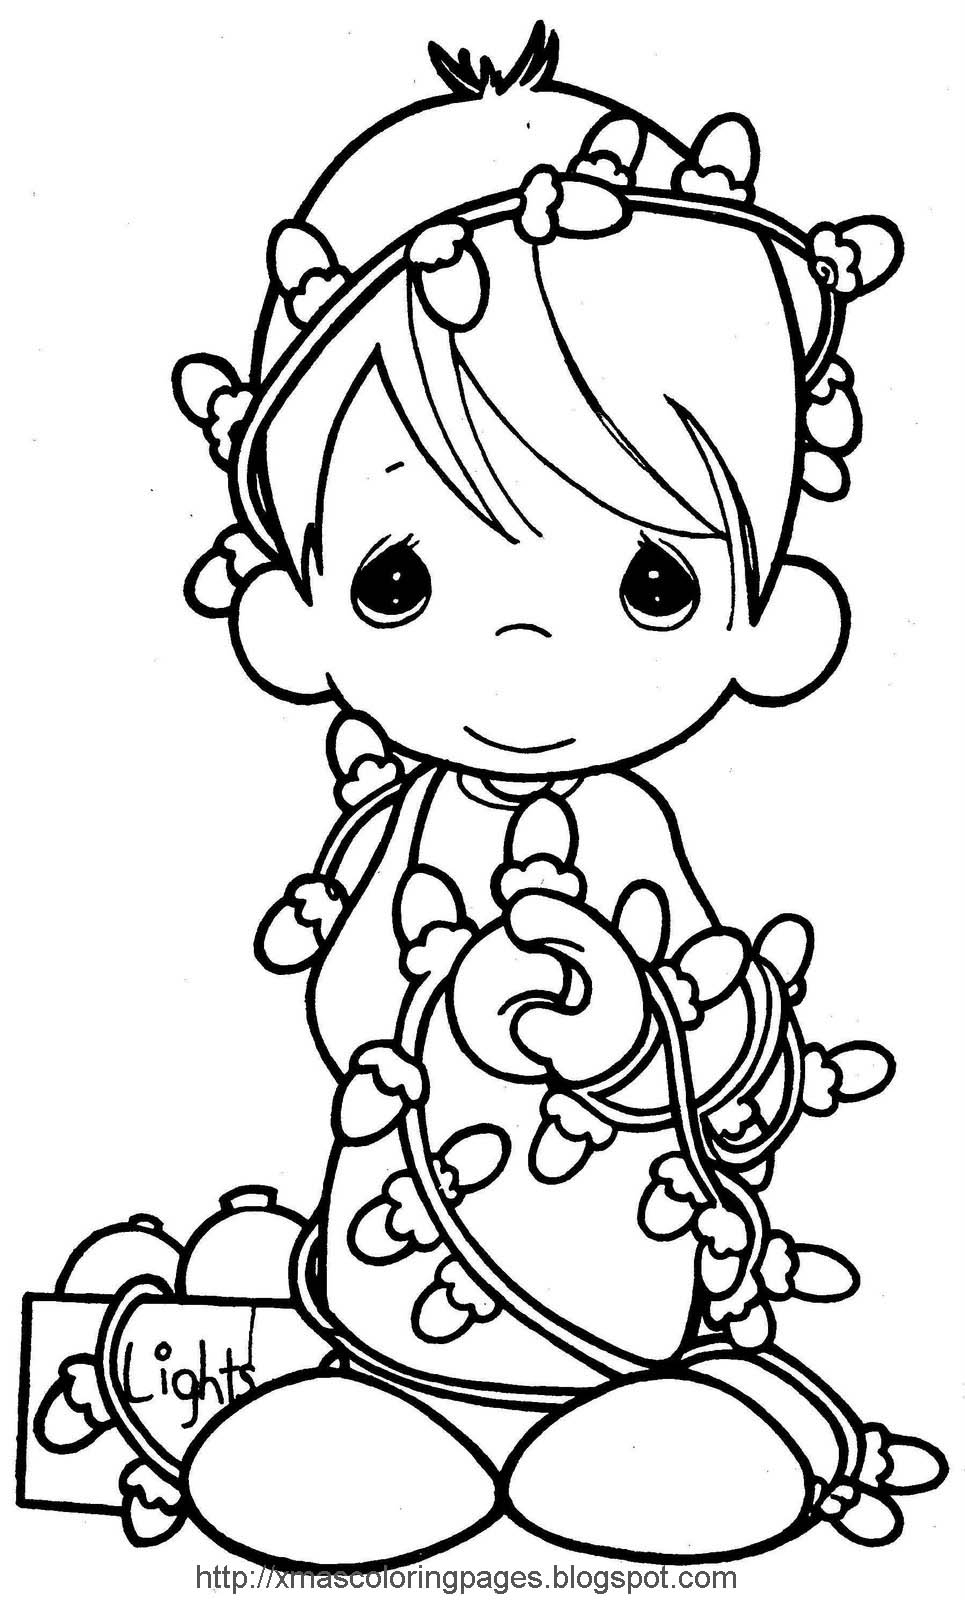 coloring pages christams - photo#7